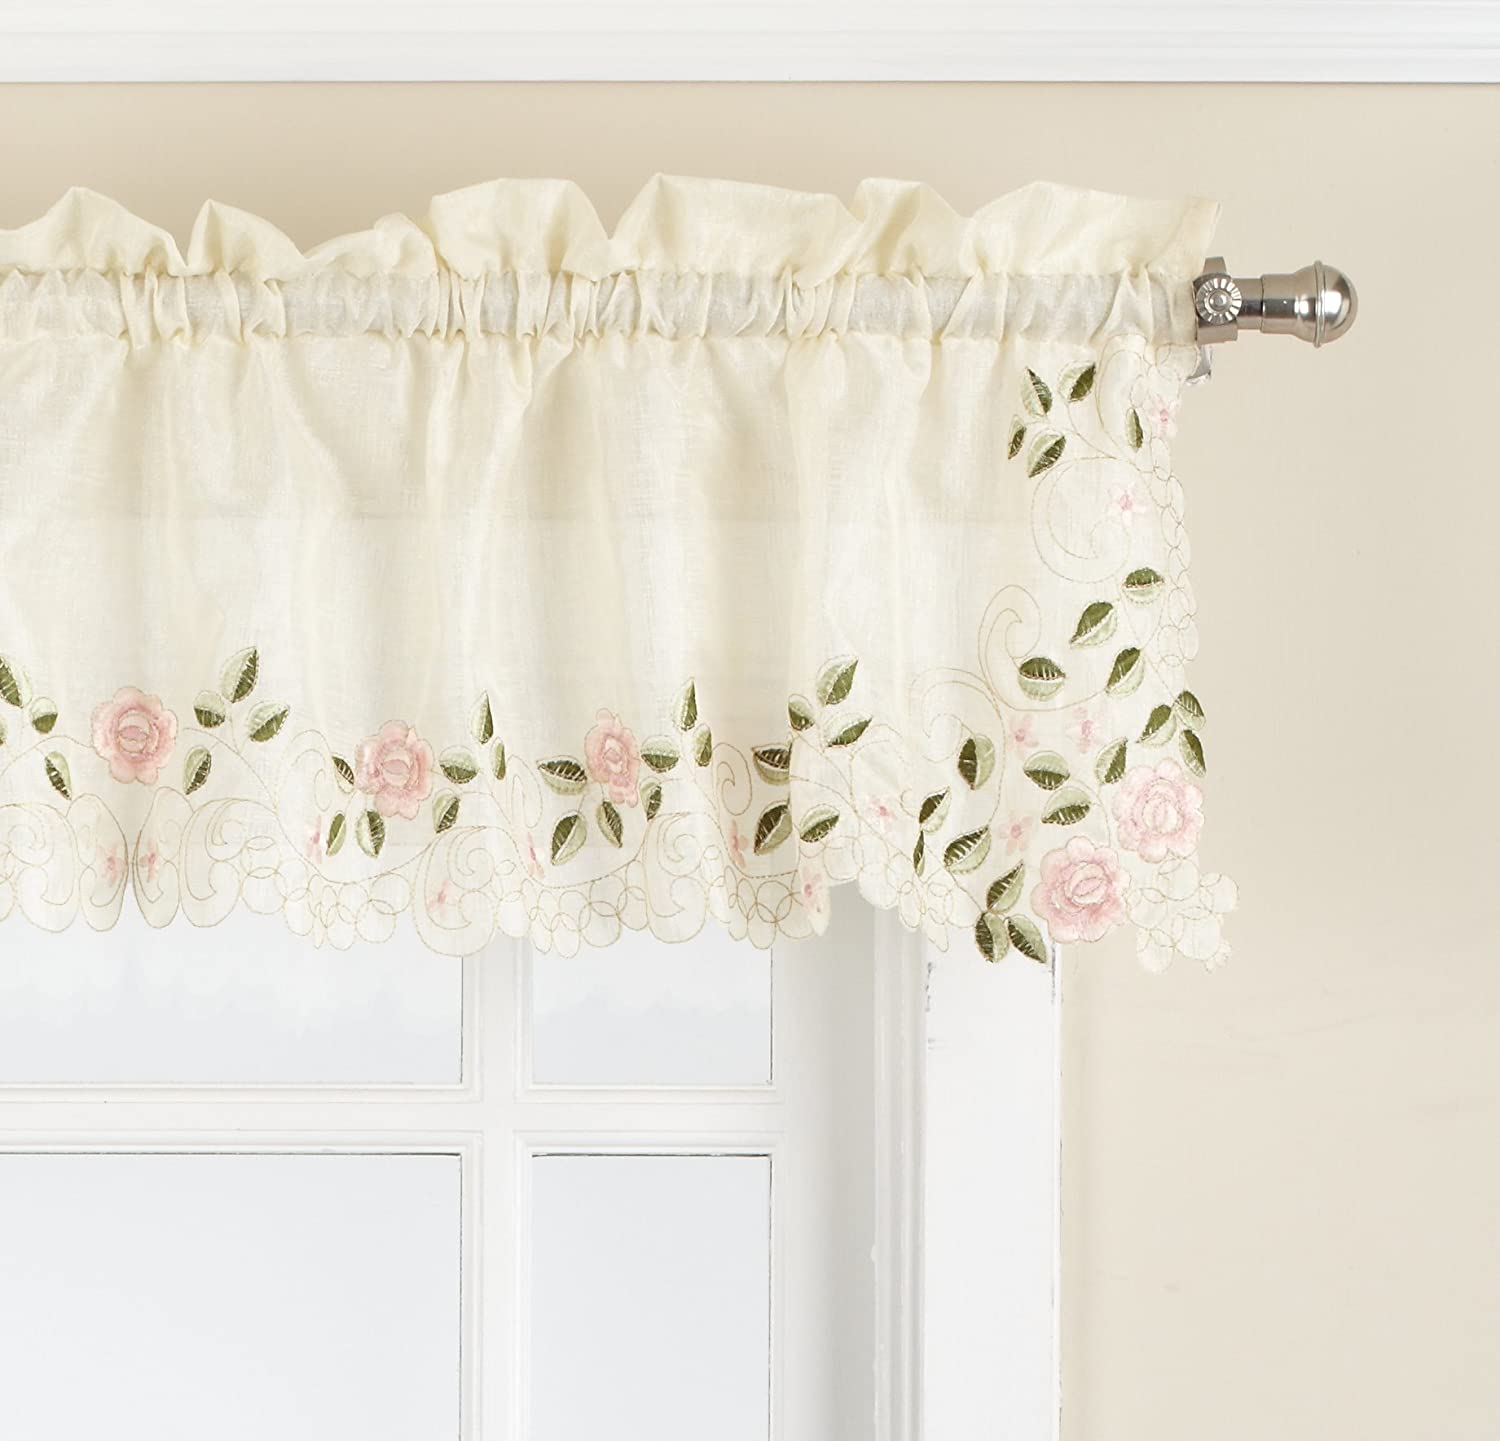 Lorraine Home Fashions Rosemary Tailored Valance, 58-Inch by 12-Inch, Linen Lorraine Home Fashions (Home) 00238-V-00059